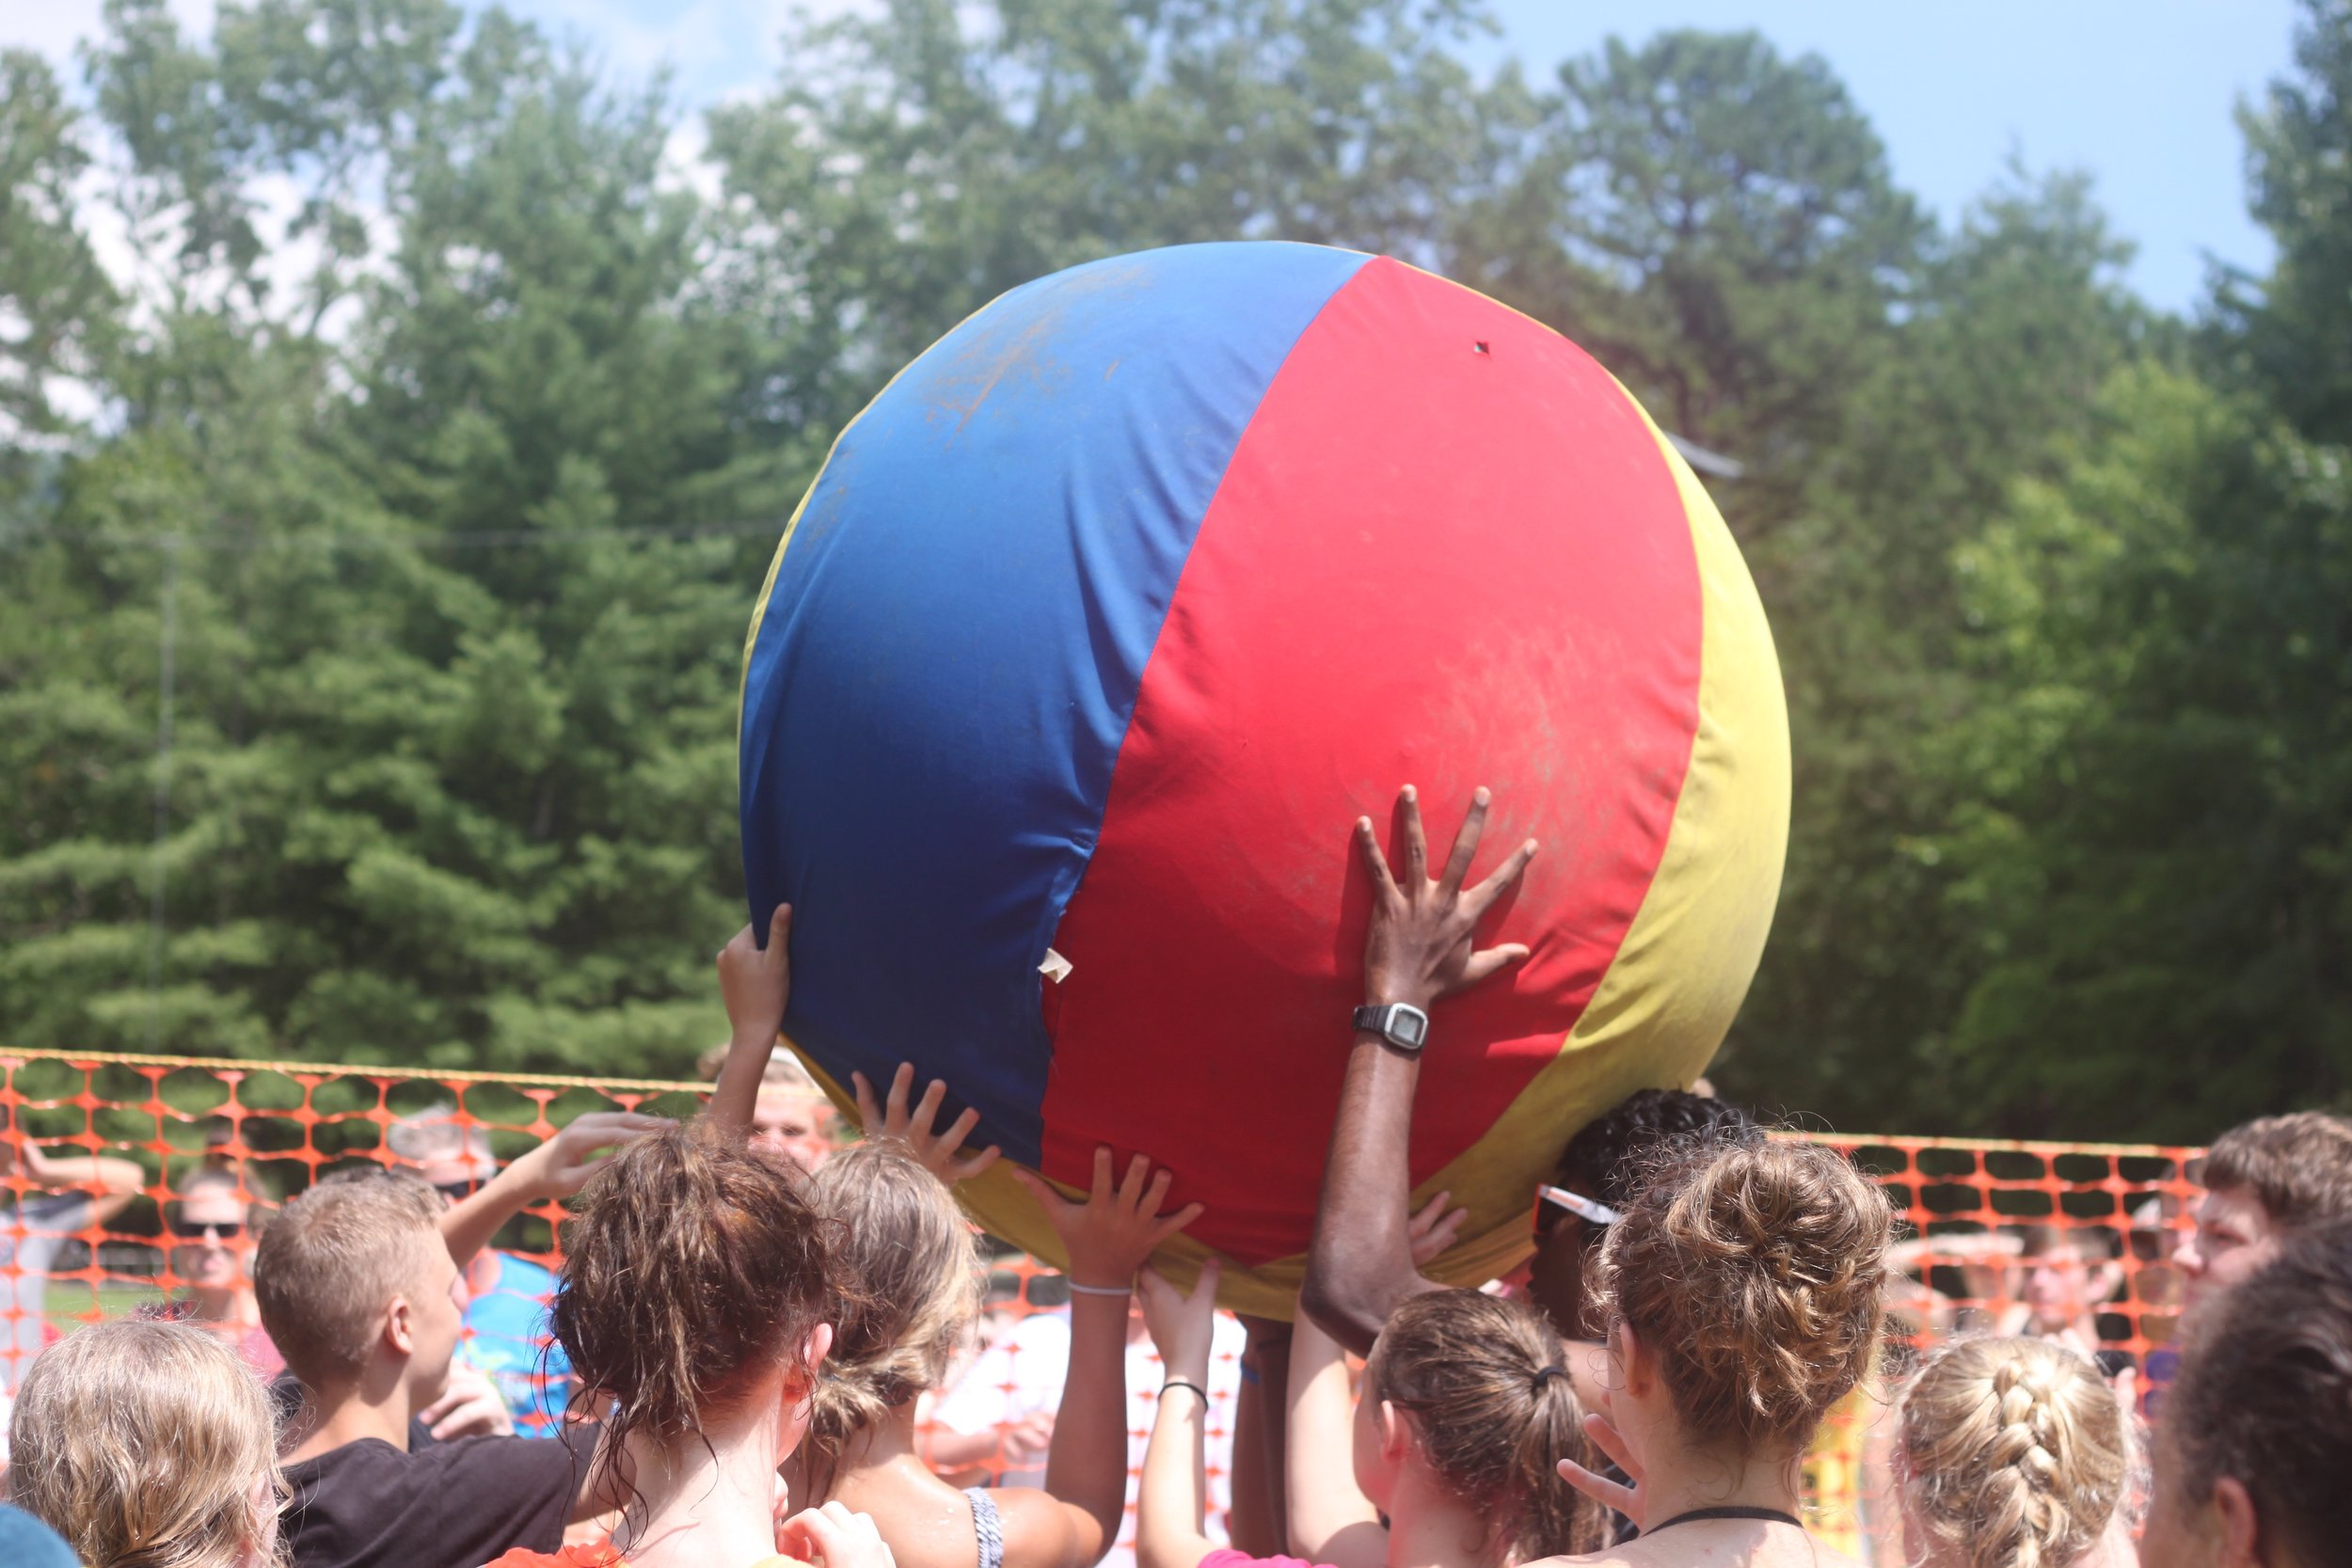 Juggernaut - Team work is required in this version of Giant ball volleyball